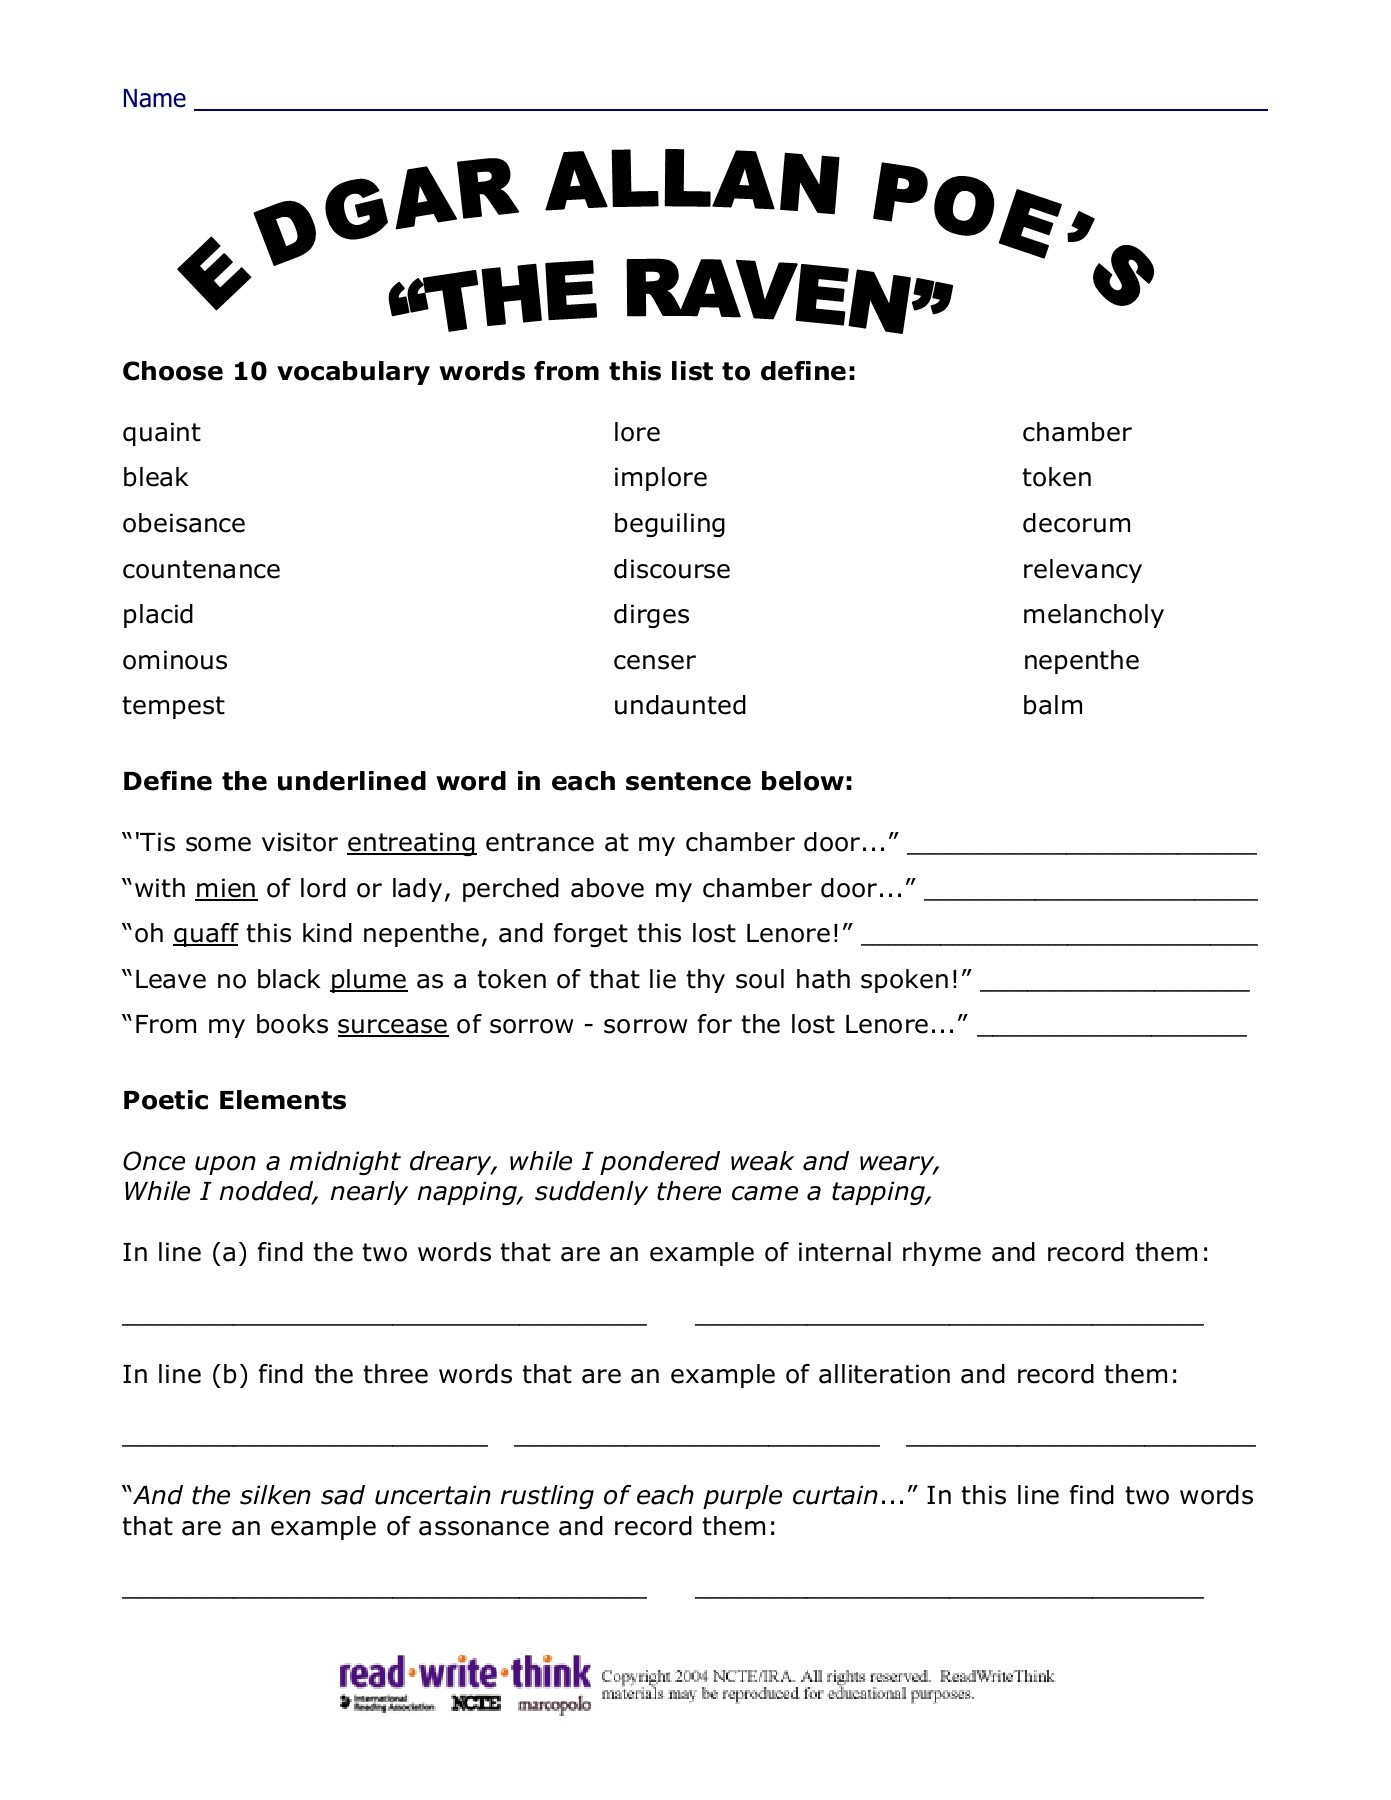 The Raven Discussion Worksheets